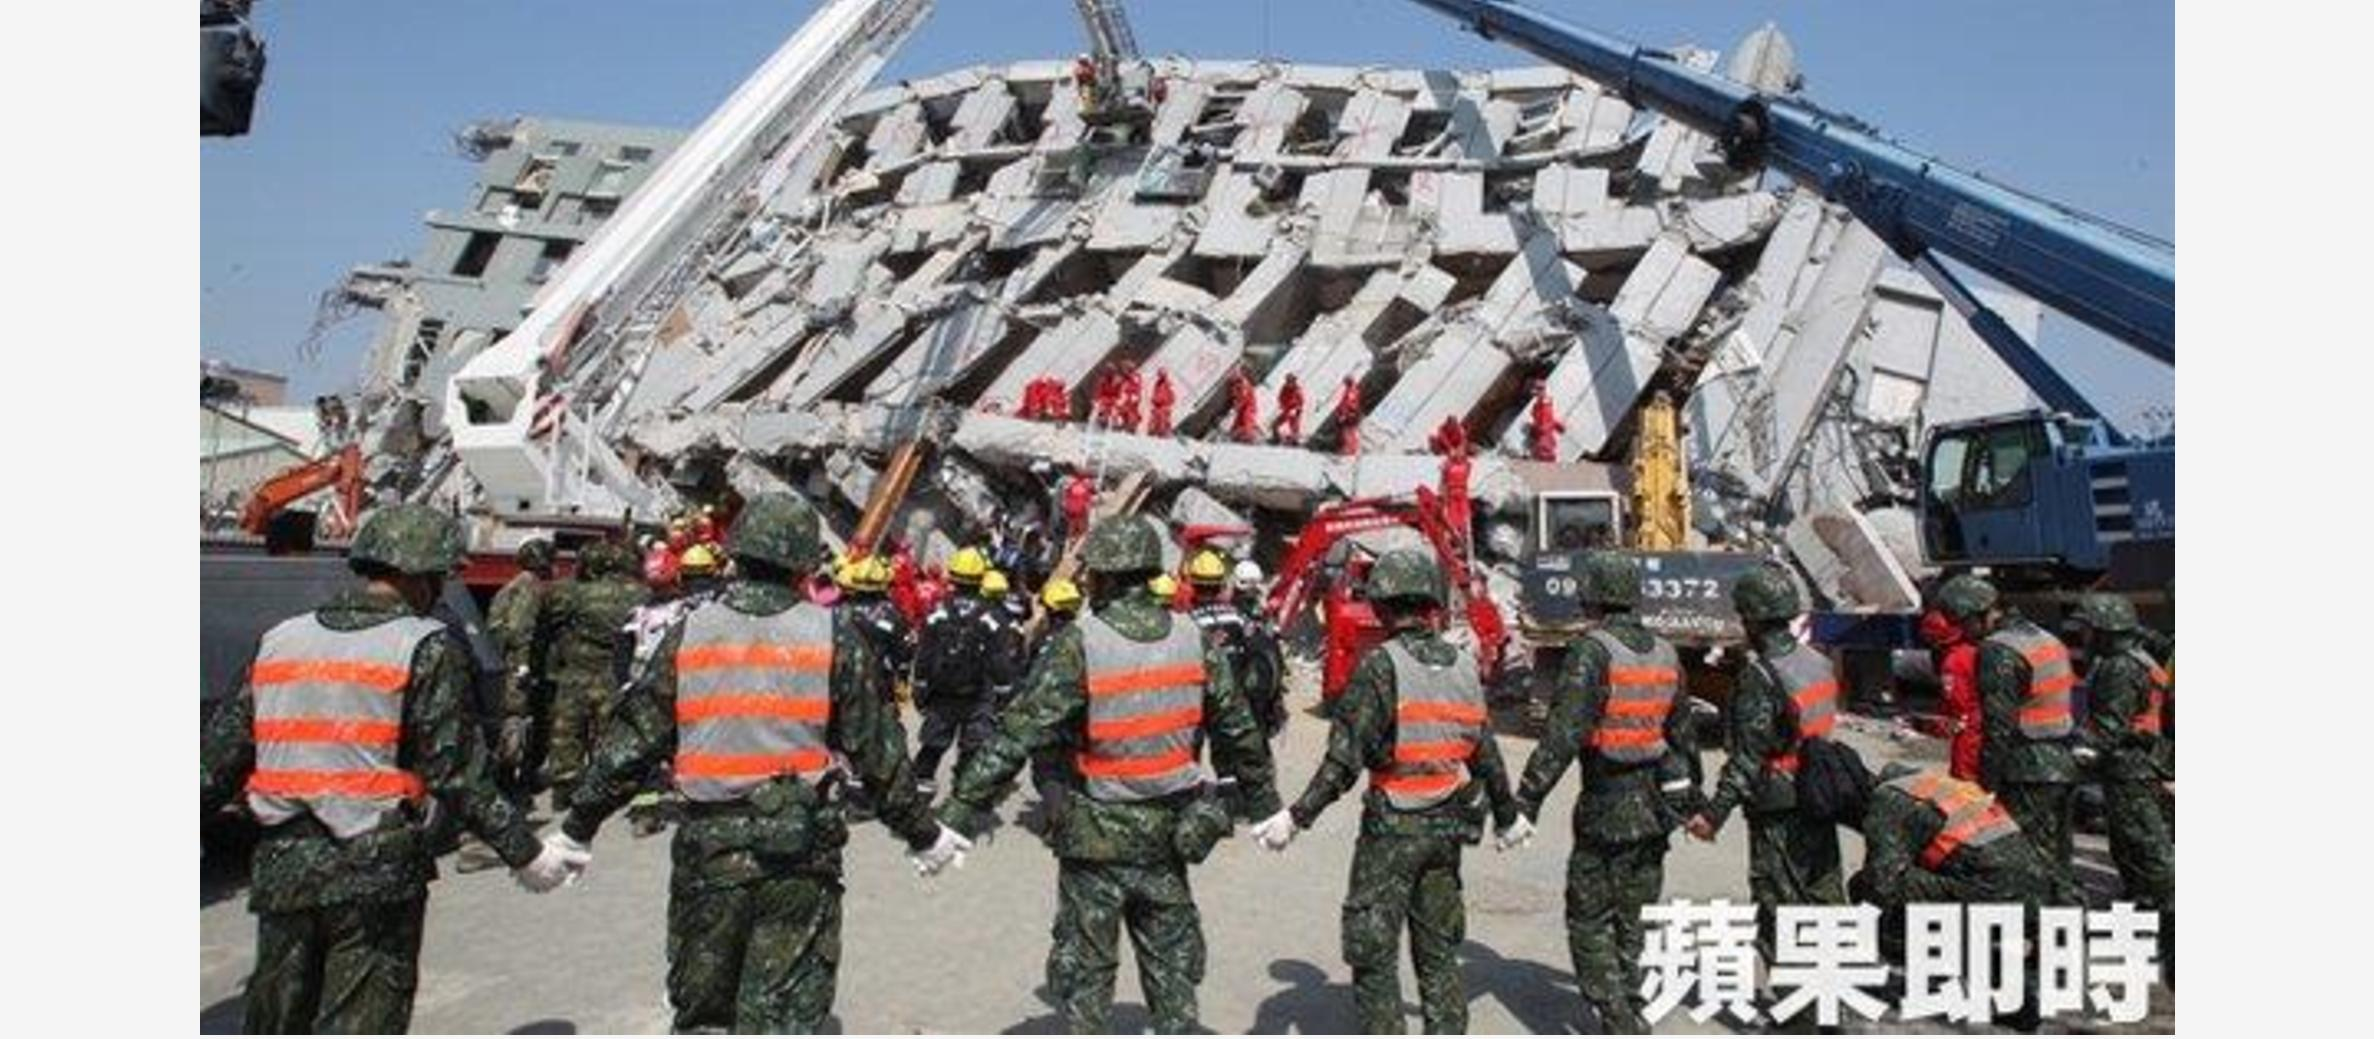 Israel to help in Taiwan earthquake rescue